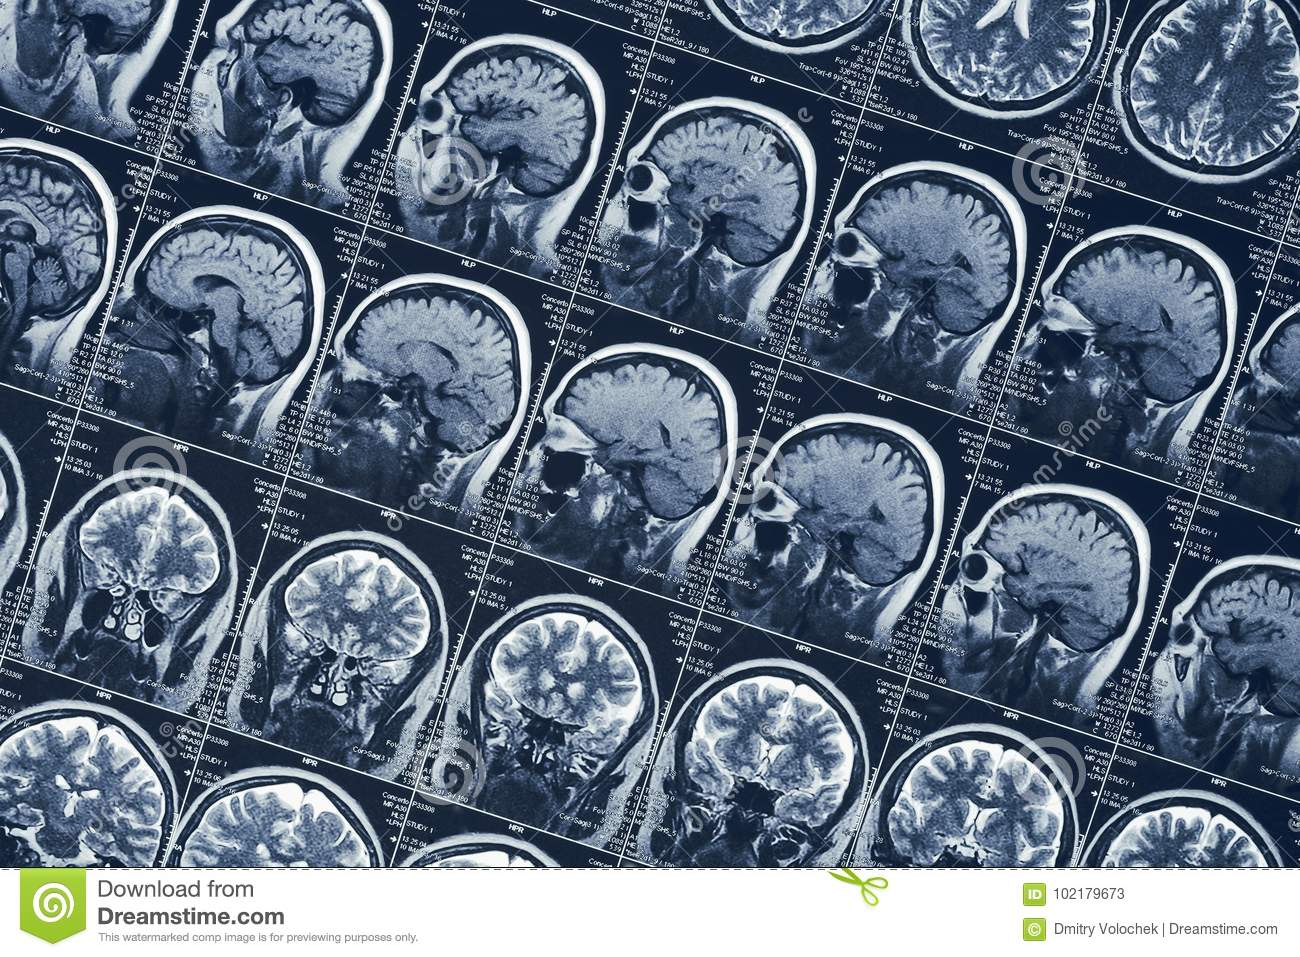 MRI brain scan or x-ray neurology human head skull tomography test